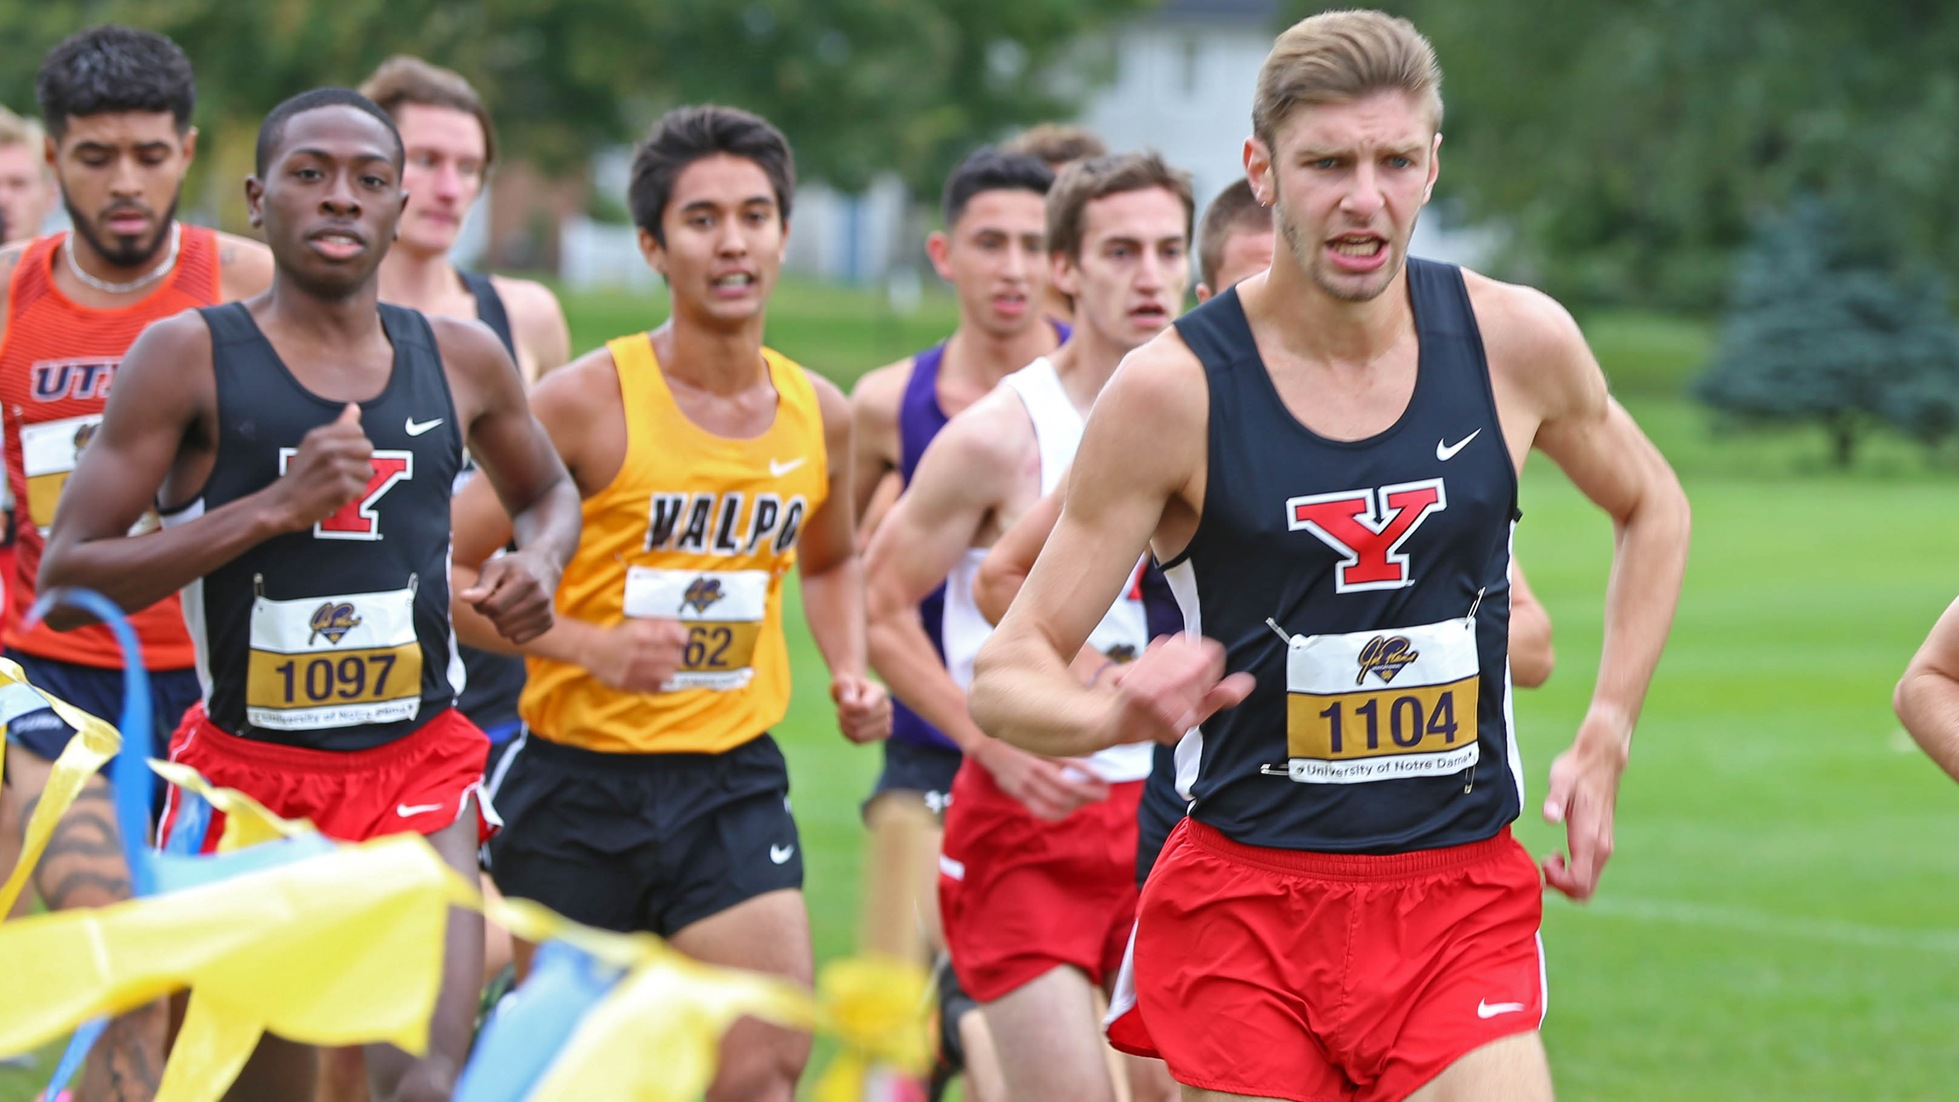 Cross Country Teams Back in Action This Weekend